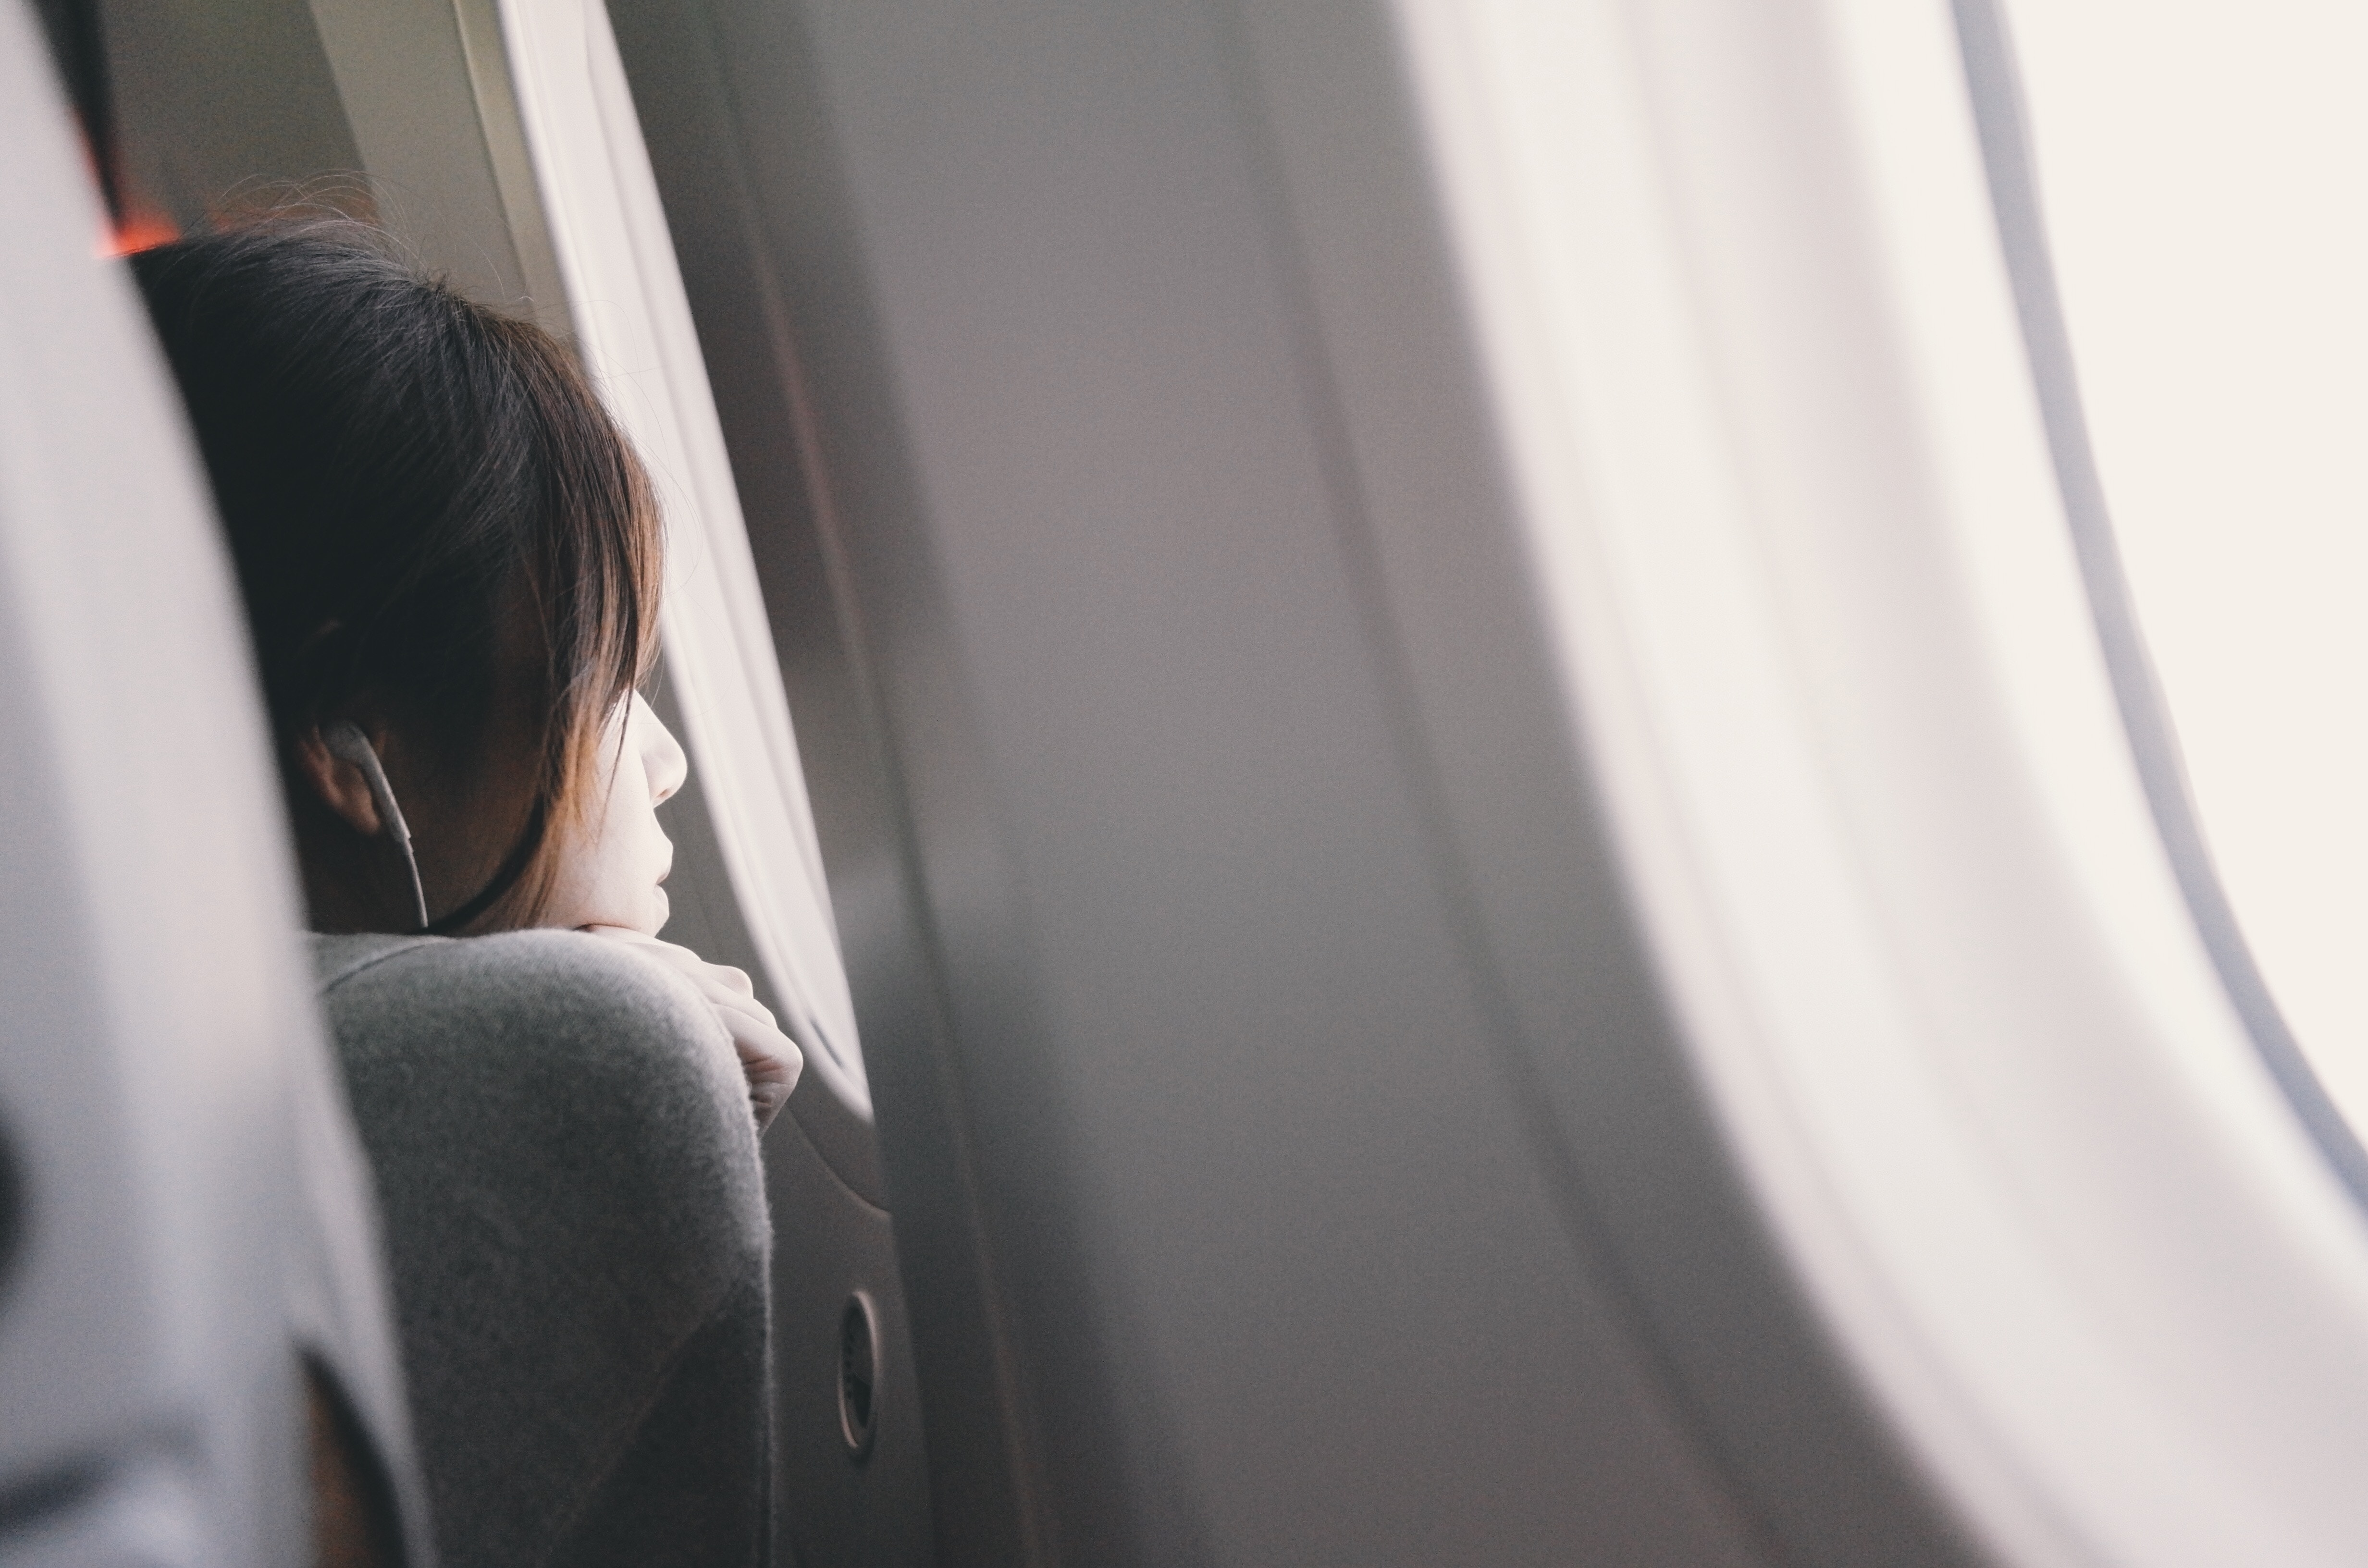 Looking out the window on a flight to Mexico City